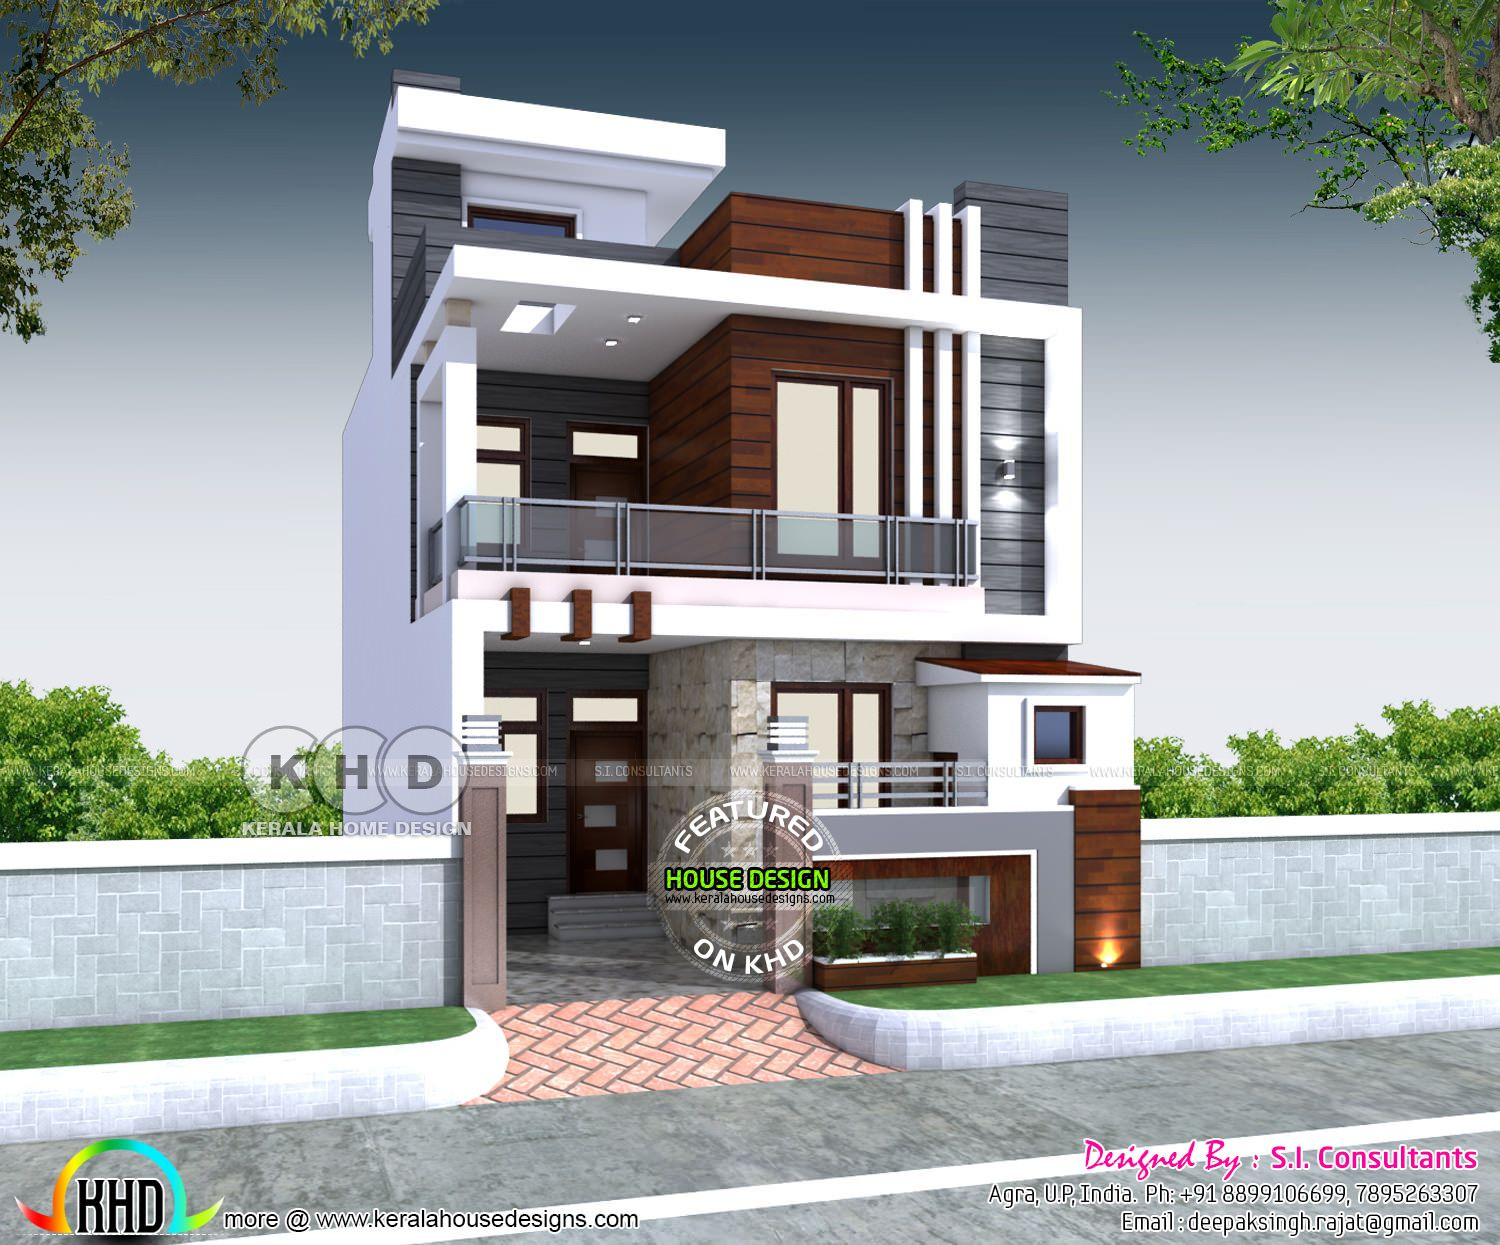 23 X 55 House Plan With 3 Bedrooms Bungalow House Design